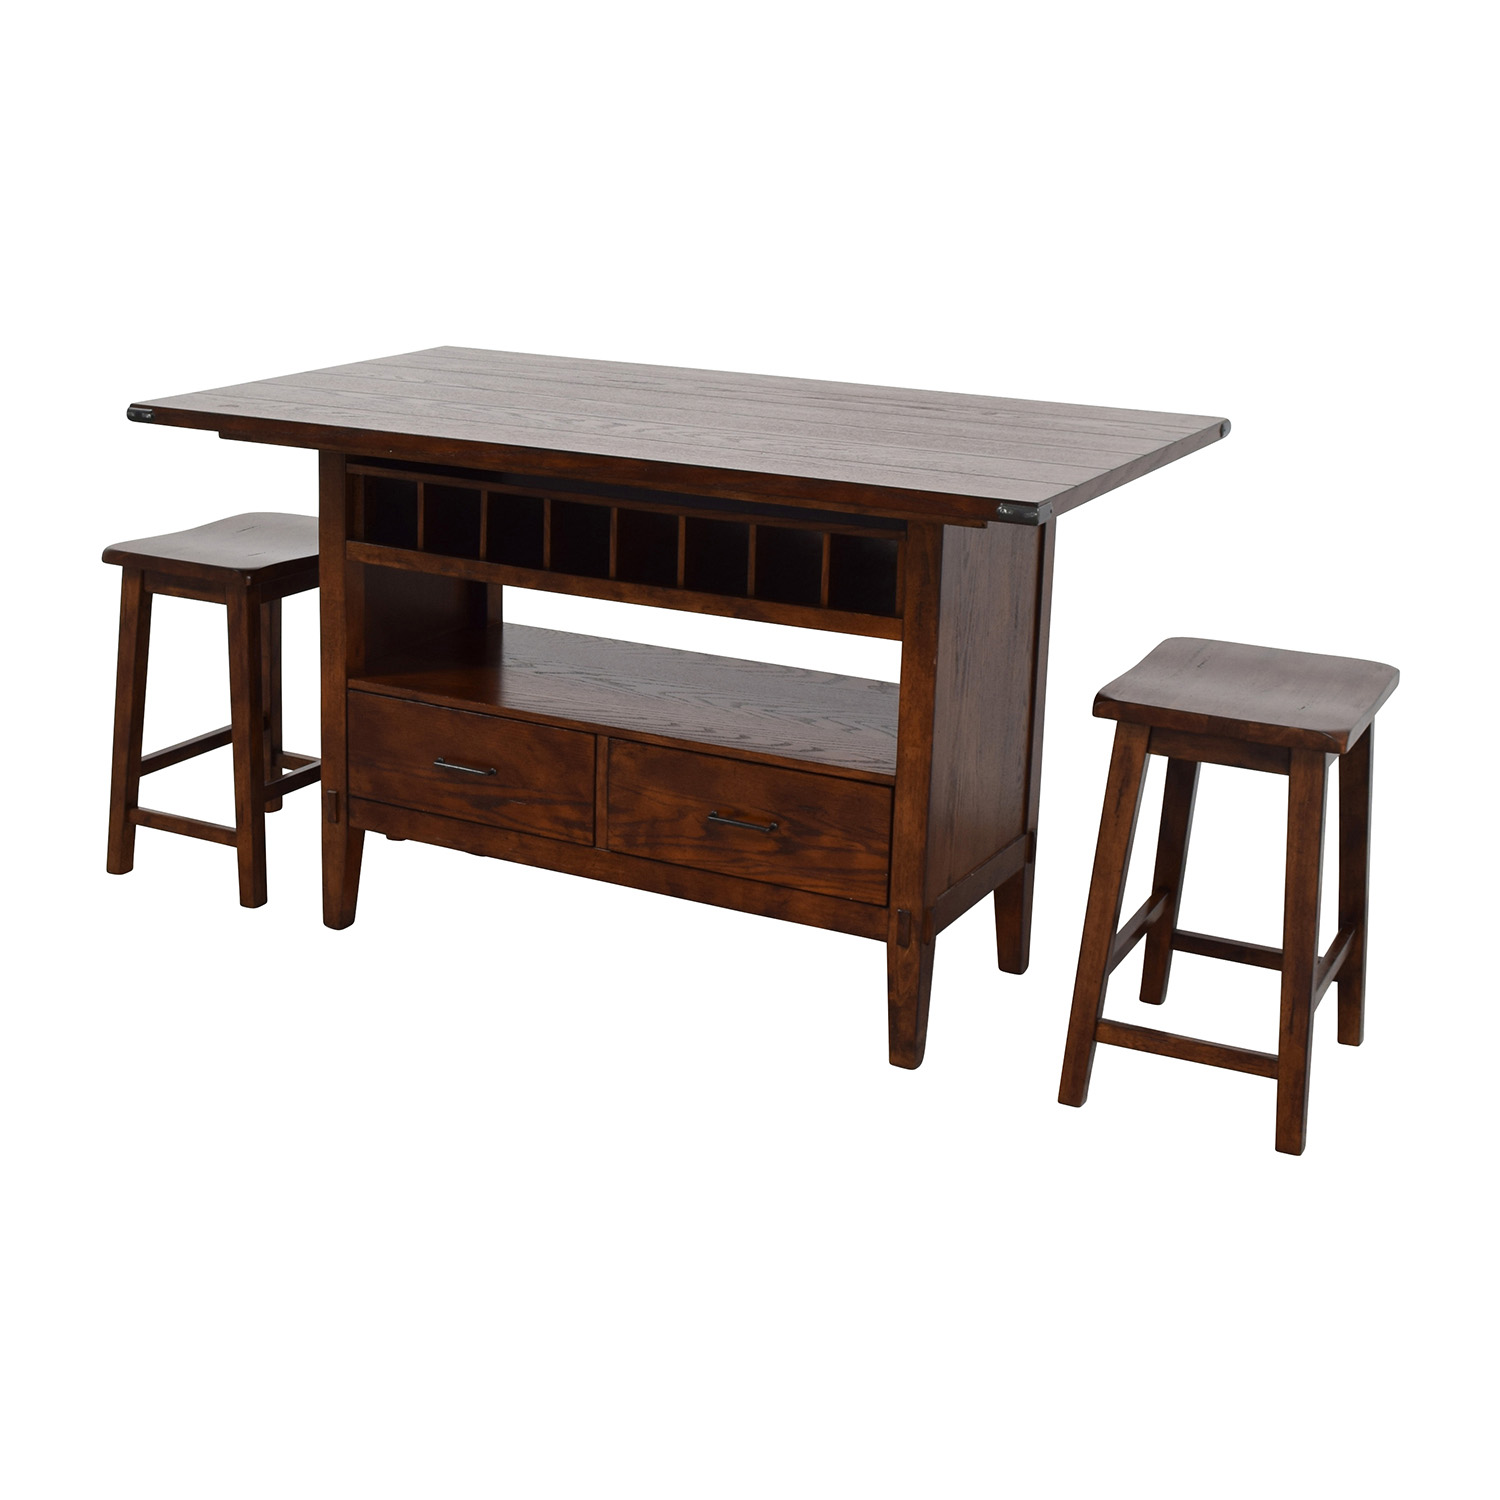 58% OFF Liberty Furniture Industries Inc Liberty Furniture